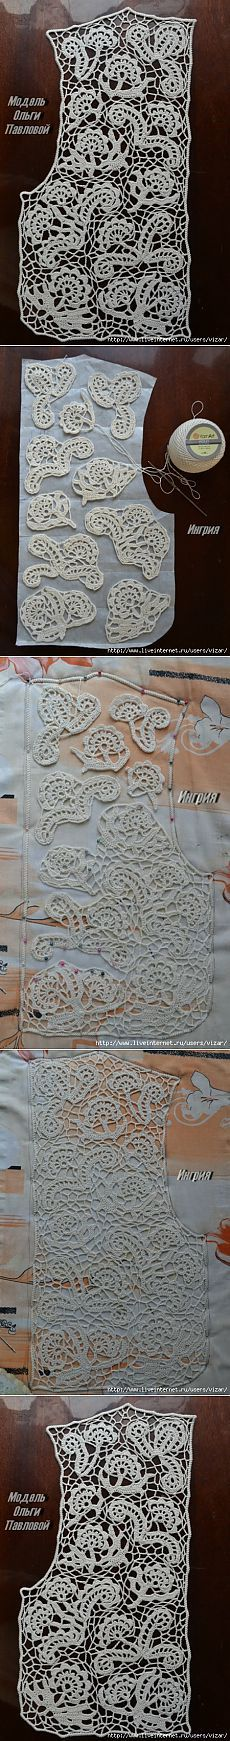 Croche Madona-mía puntos y graficos: Iris Crochet-Crochet irlandés Gráficos -B- Irish Crochet Patterns, Crochet Motifs, Freeform Crochet, Crochet Art, Lace Patterns, Filet Crochet, Crochet Designs, Crochet Crafts, Crochet Flowers